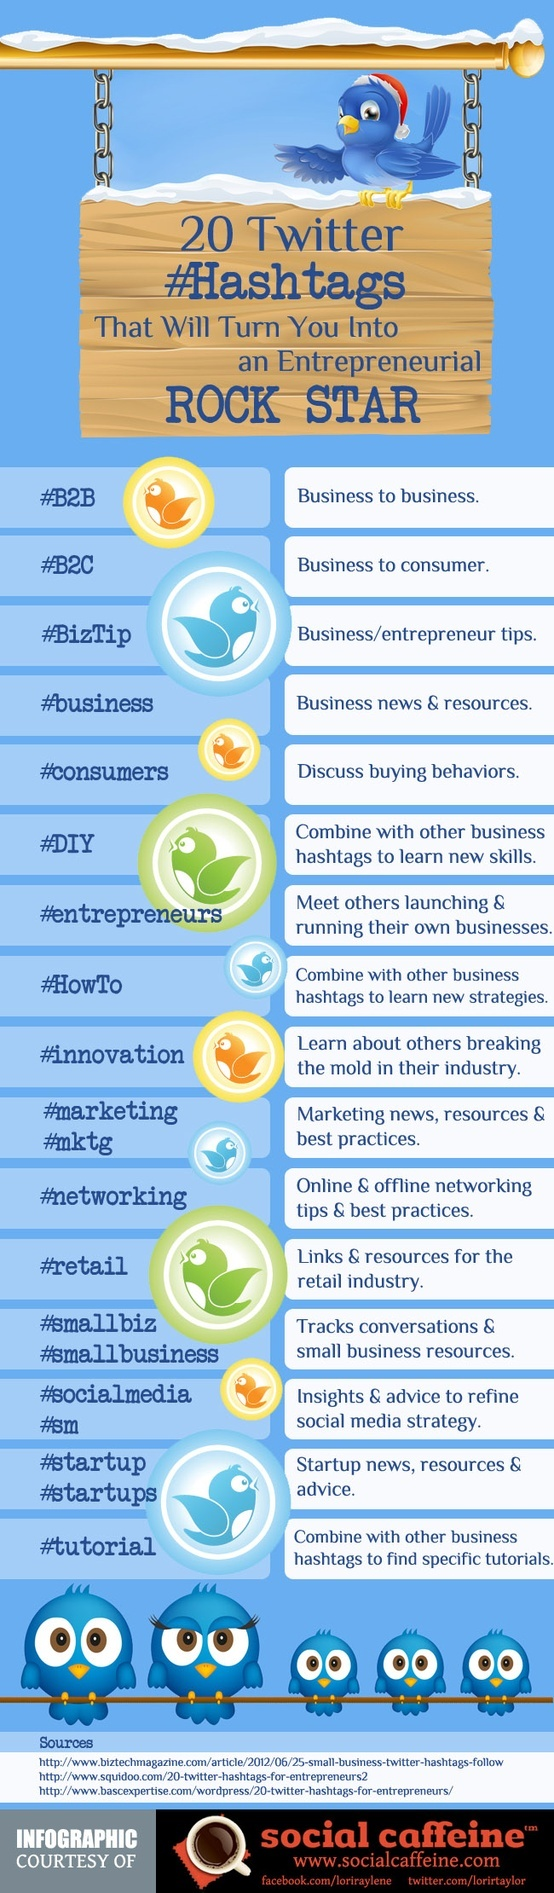 Don't just use Twitter to make connections. Use it also to stay on top of the latest trends in your industry, learn new skills, and become the entrepreneurial rock star you've always wanted to be. Here are 20 business hashtags you can use to become the rock star you were meant to be.